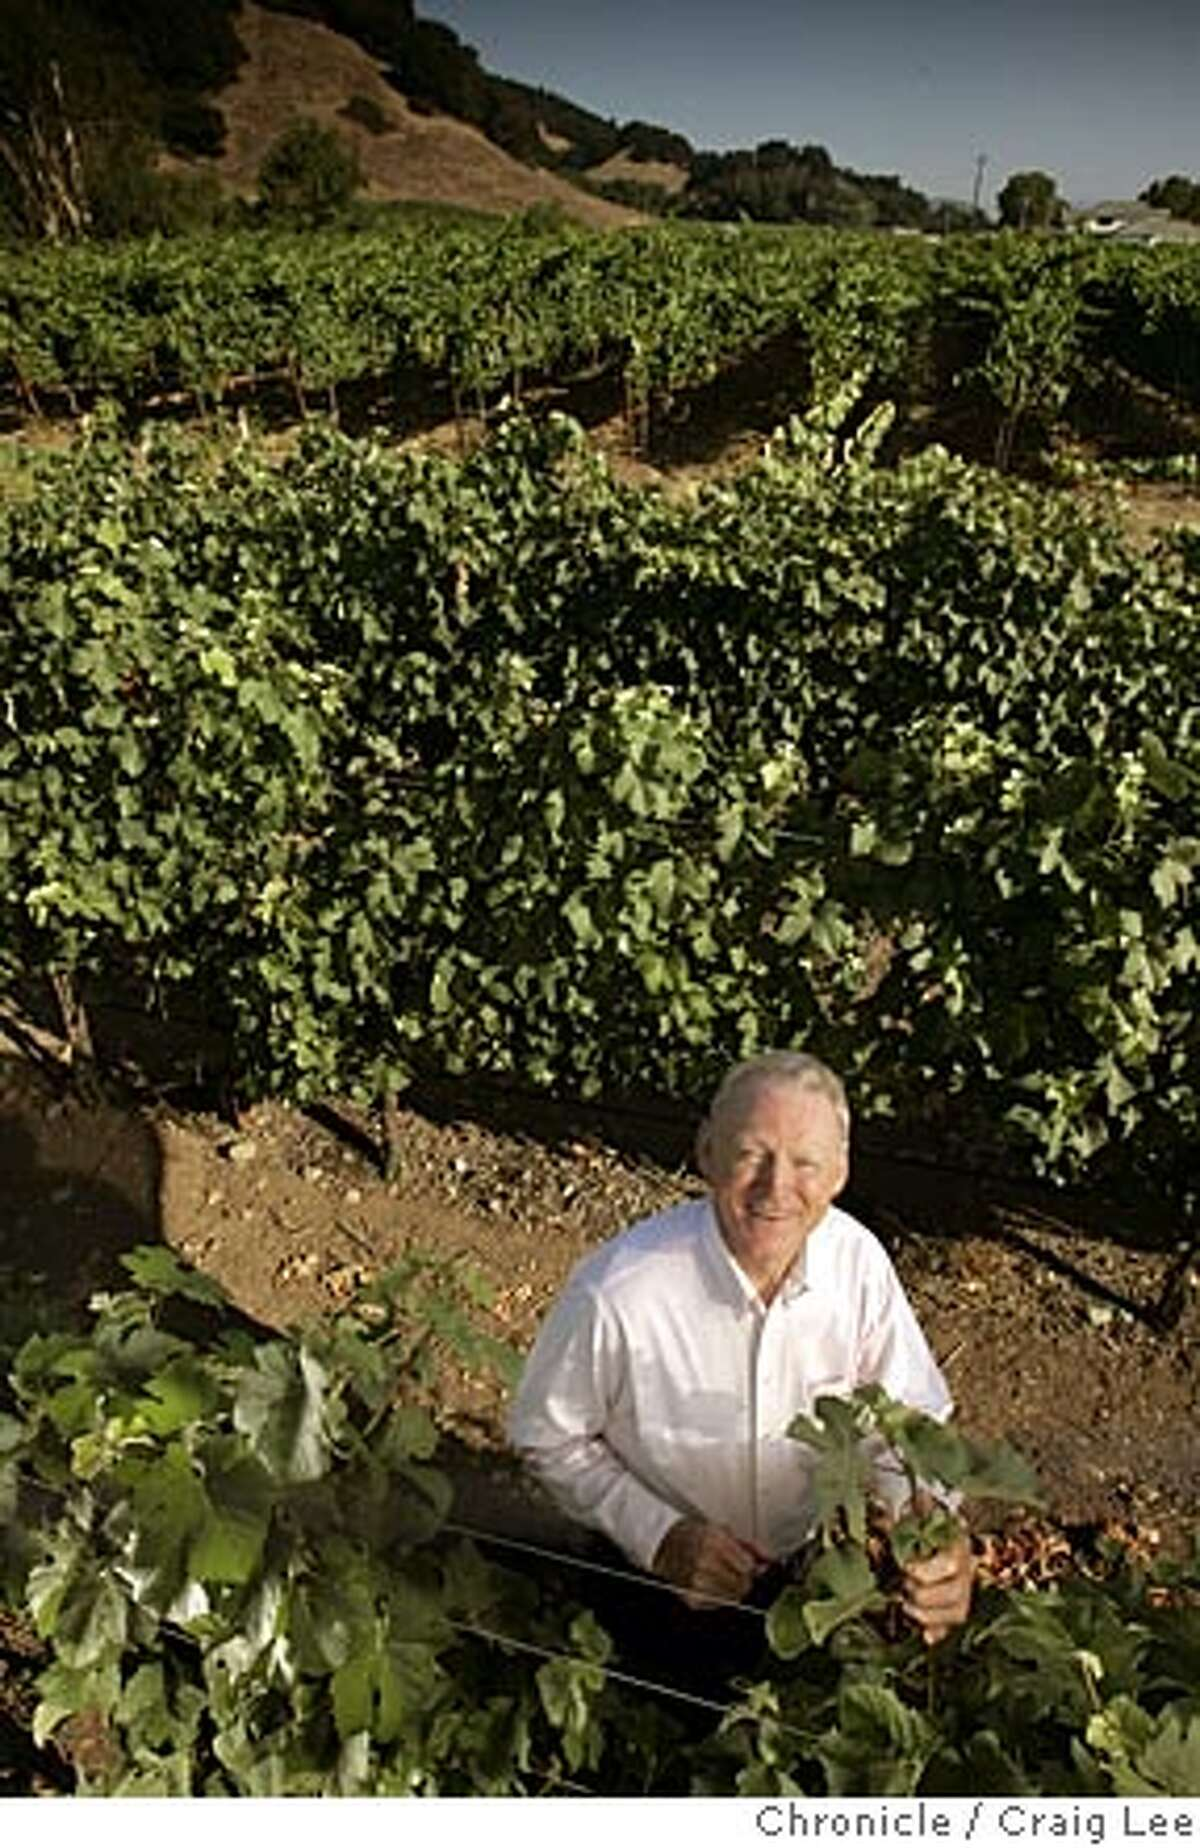 Photo of Dick Peterson, an eccentric and an inventor, and the Peterson dynasty, Heidi Barrett Peterson, his winemaker daughter and Holly Peterson, his chef daughter. Photo of Dick Peterson standing in his vineyard of Wrotham Pinot Noir in the foreground which is darker in color than his neighbor's Merlot in the background. Don't know if it really shows the difference in a photo. Event on 7/14/05 in Napa. Craig Lee / The Chronicle